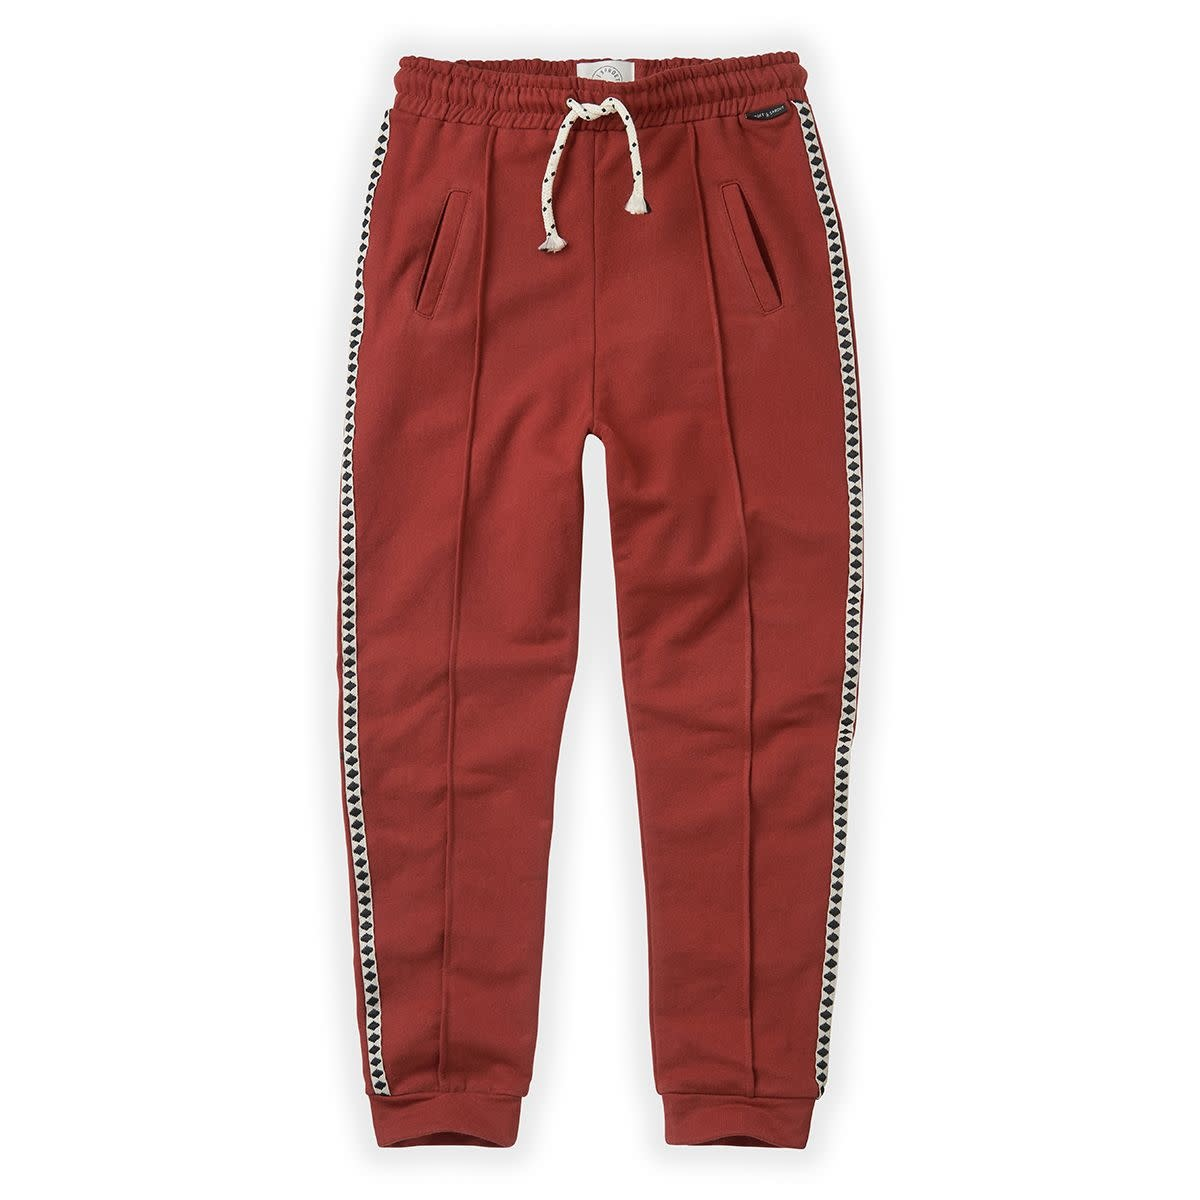 Sproet & Sprout Sproet&Sprout - Trackpants beet maroon